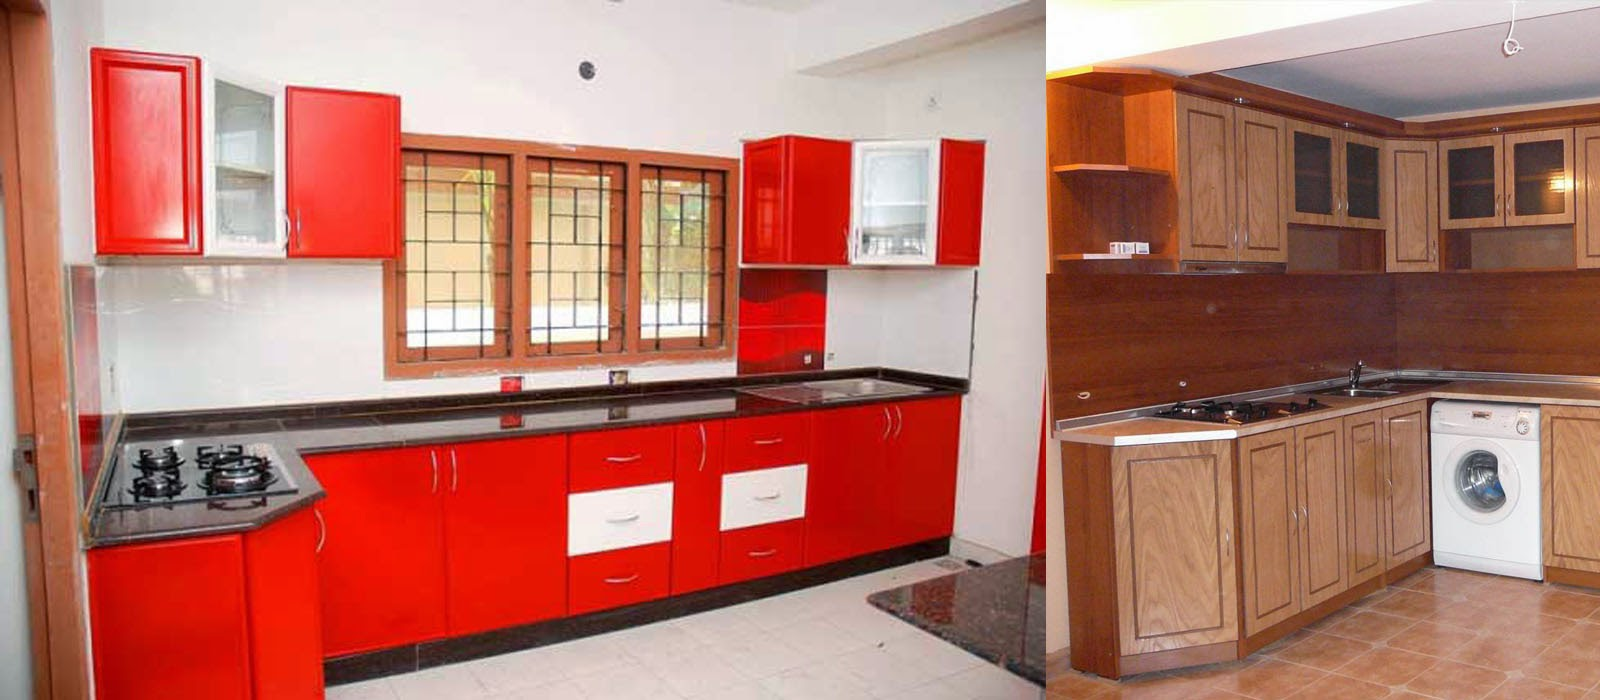 aluminium fabrication kichen cabinets photos in kerala